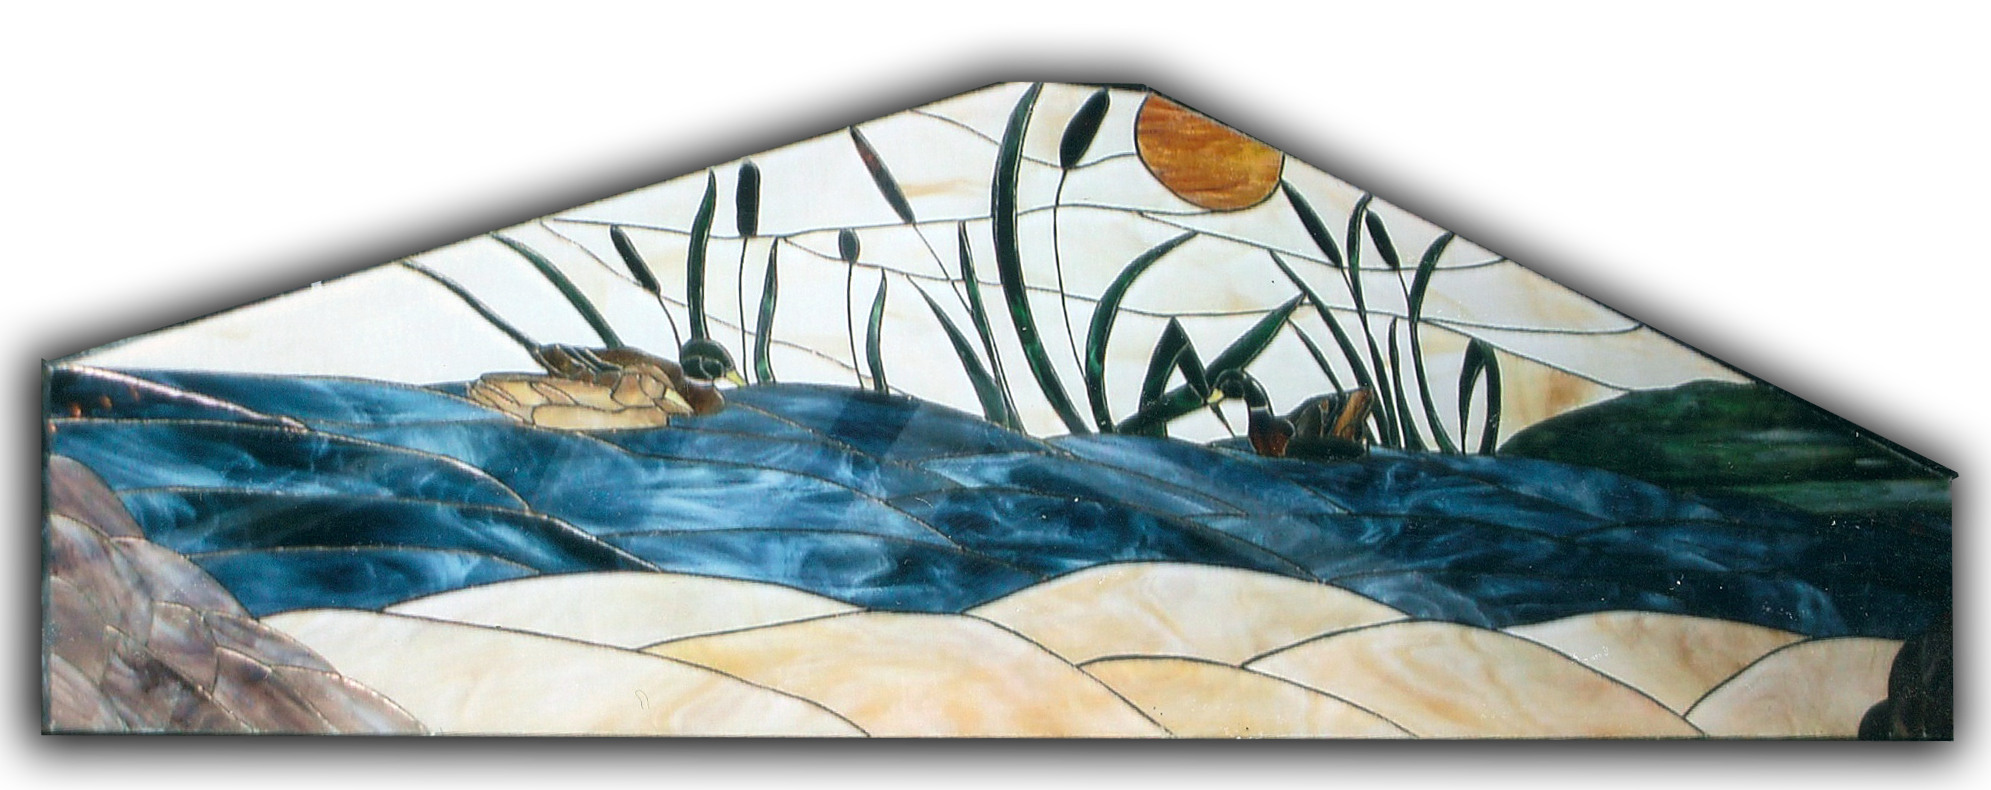 special shaped stained glass window